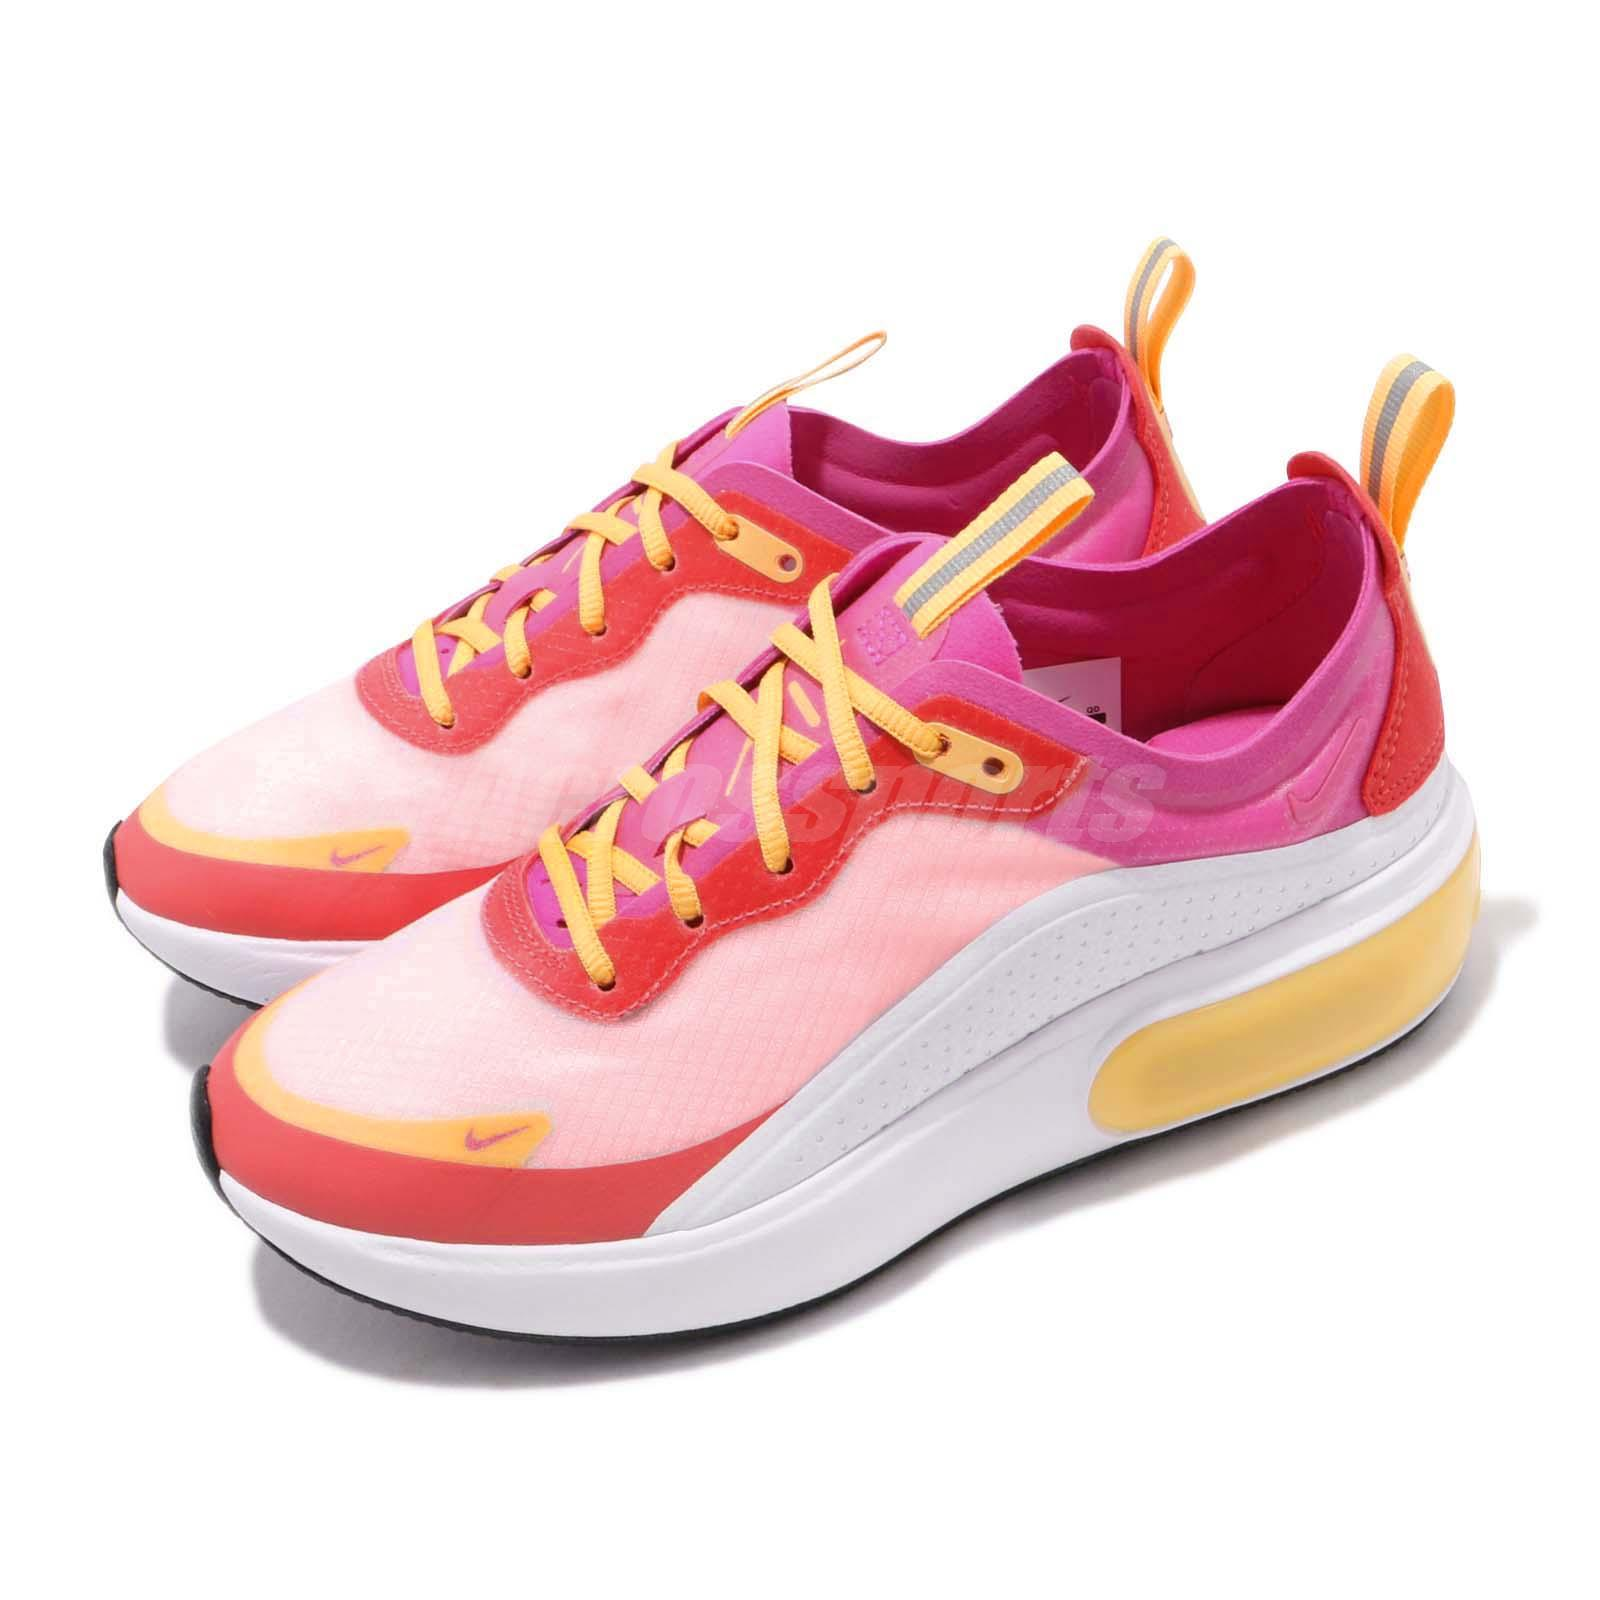 Details about Nike Wmns Air Max Dia SE White Laser Fuchsia Ember Glow Women Shoes AR7410 102